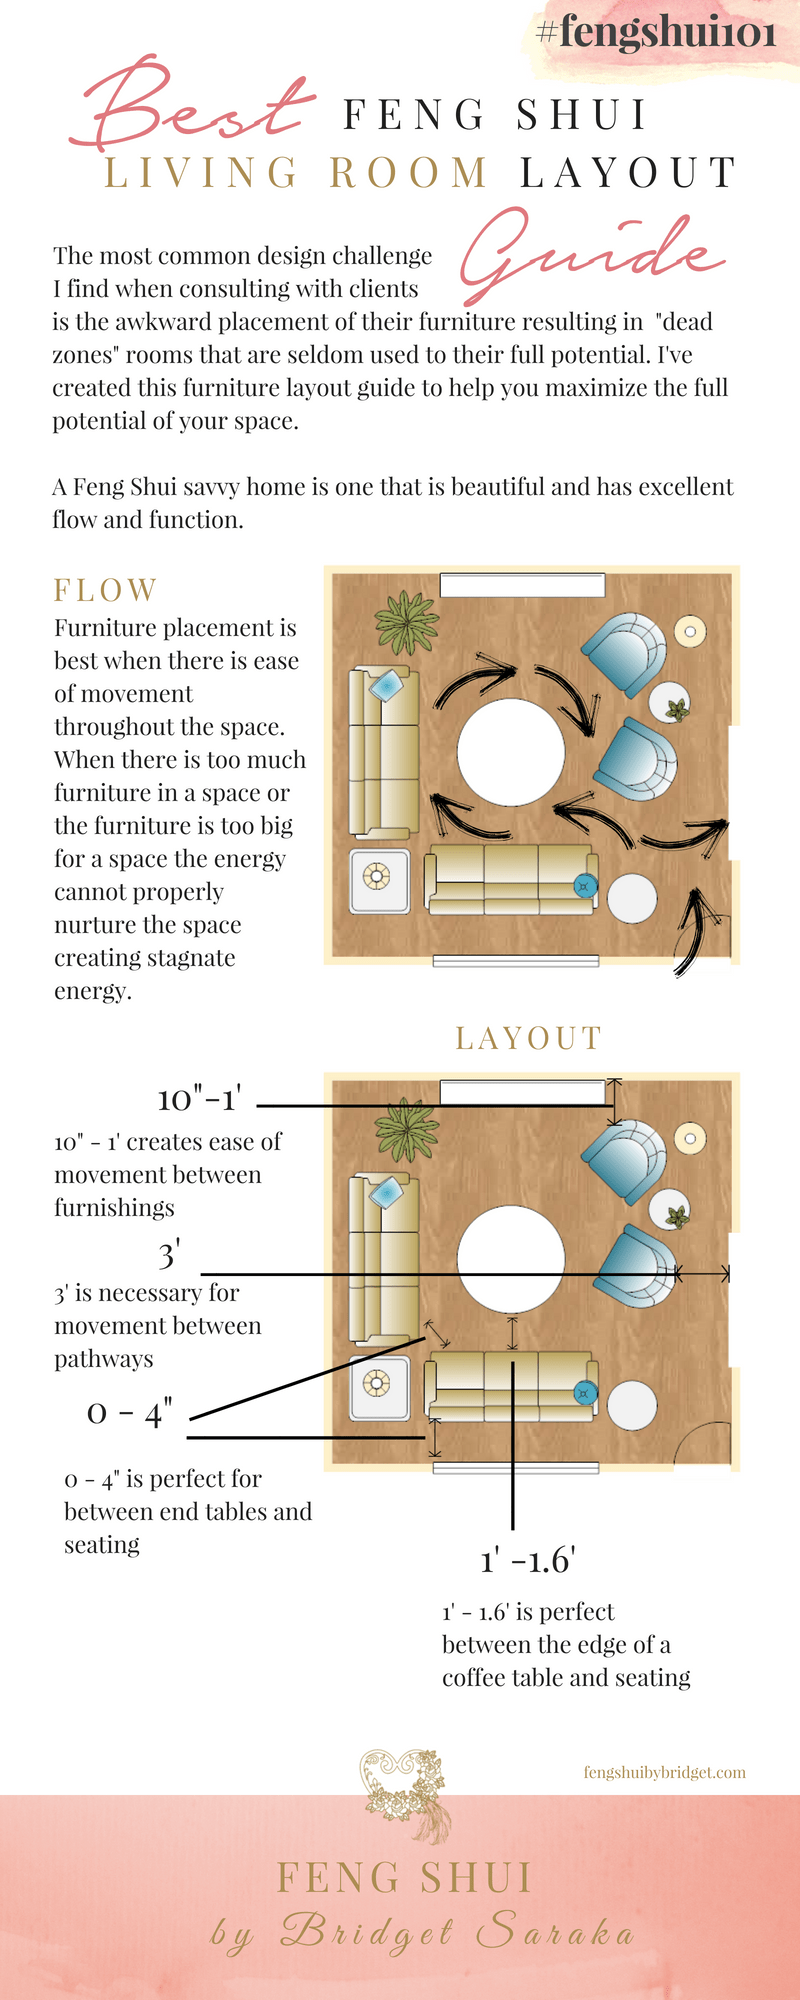 best feng shui pictures for living room show case the layout guide fengshui101 share it save pin